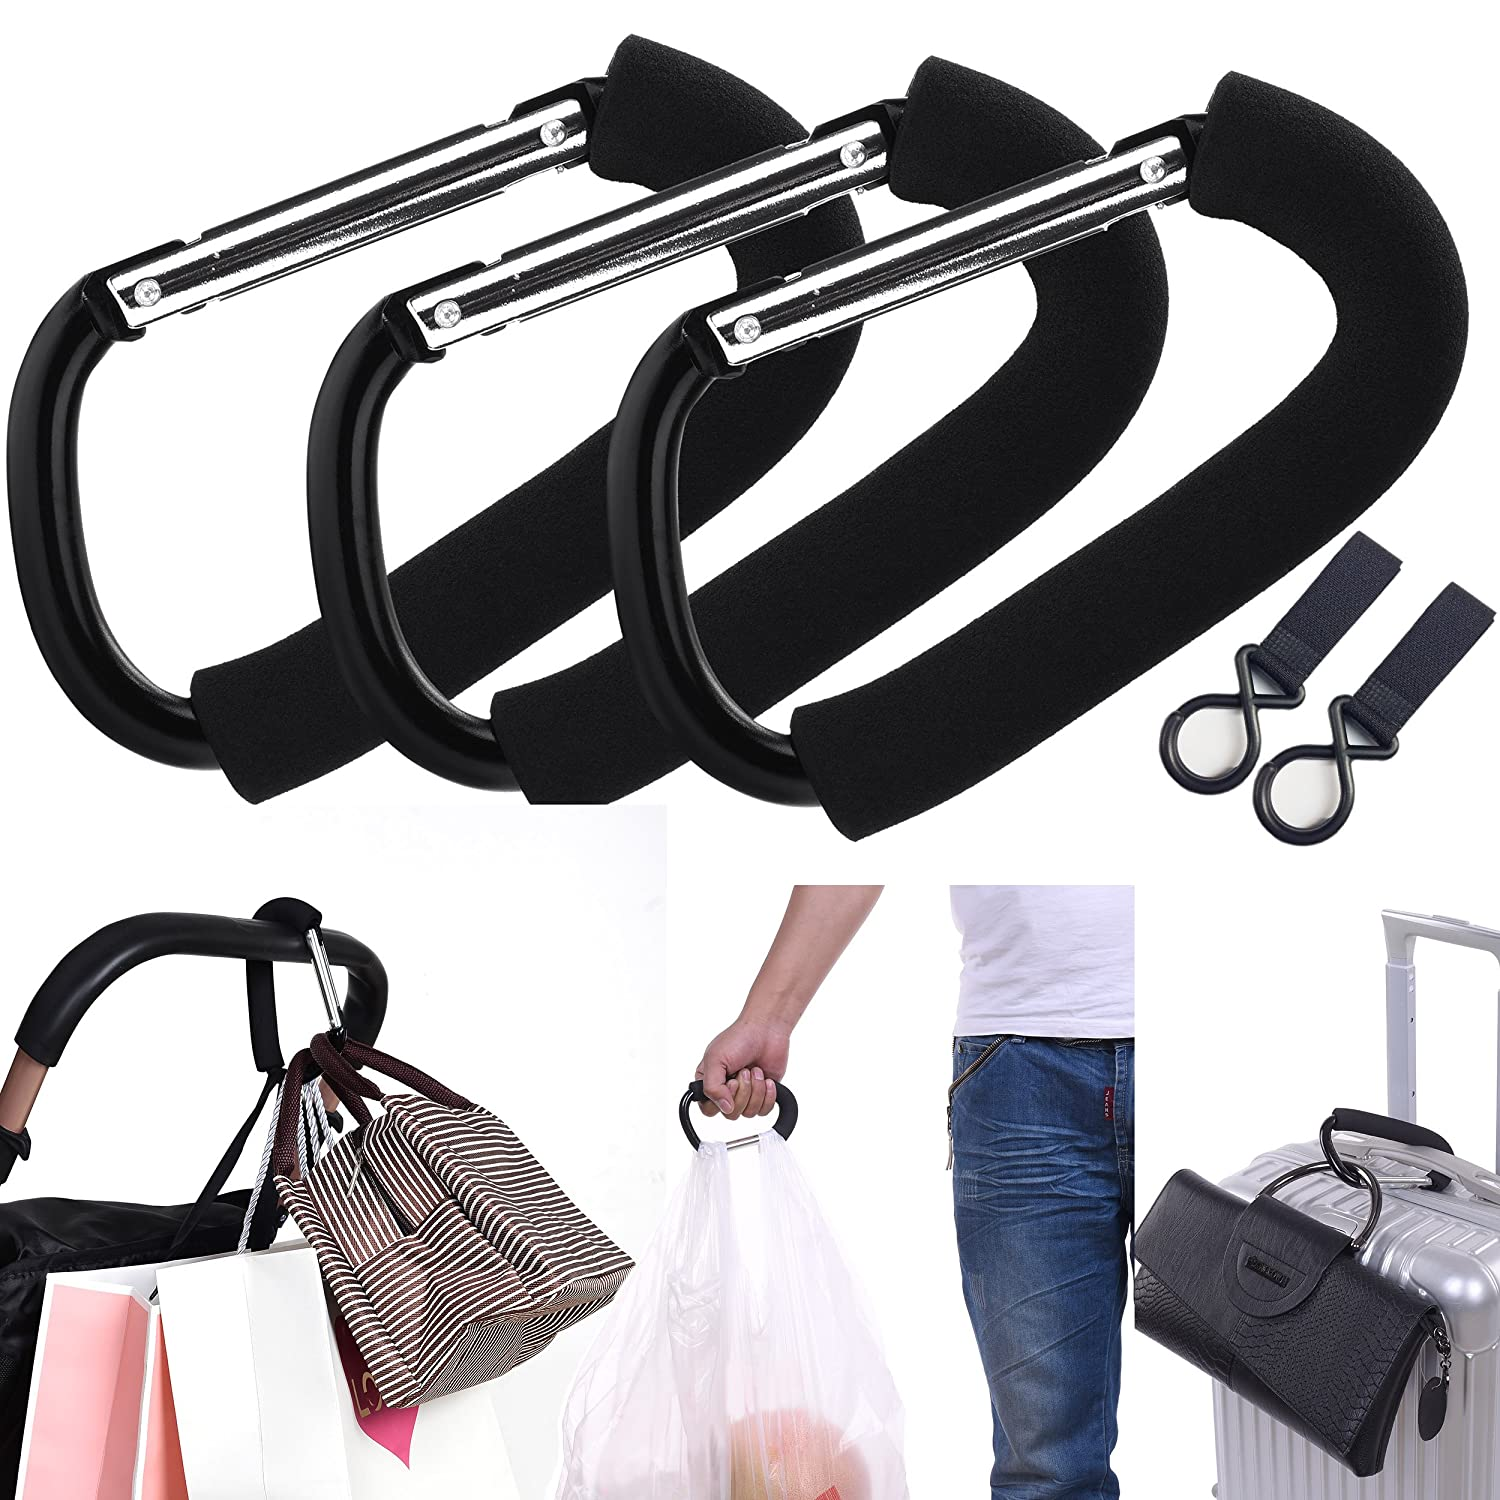 APURSUE 3 Pack X-Large Stroller Hook for Mommy Hanger Organizer Baby Accessories for Hanging Diaper Shopping Bags Purses. Fits Single/Twin Baby Stroller Travel Systems Baby Joggers and Wheelchairs ASET0002